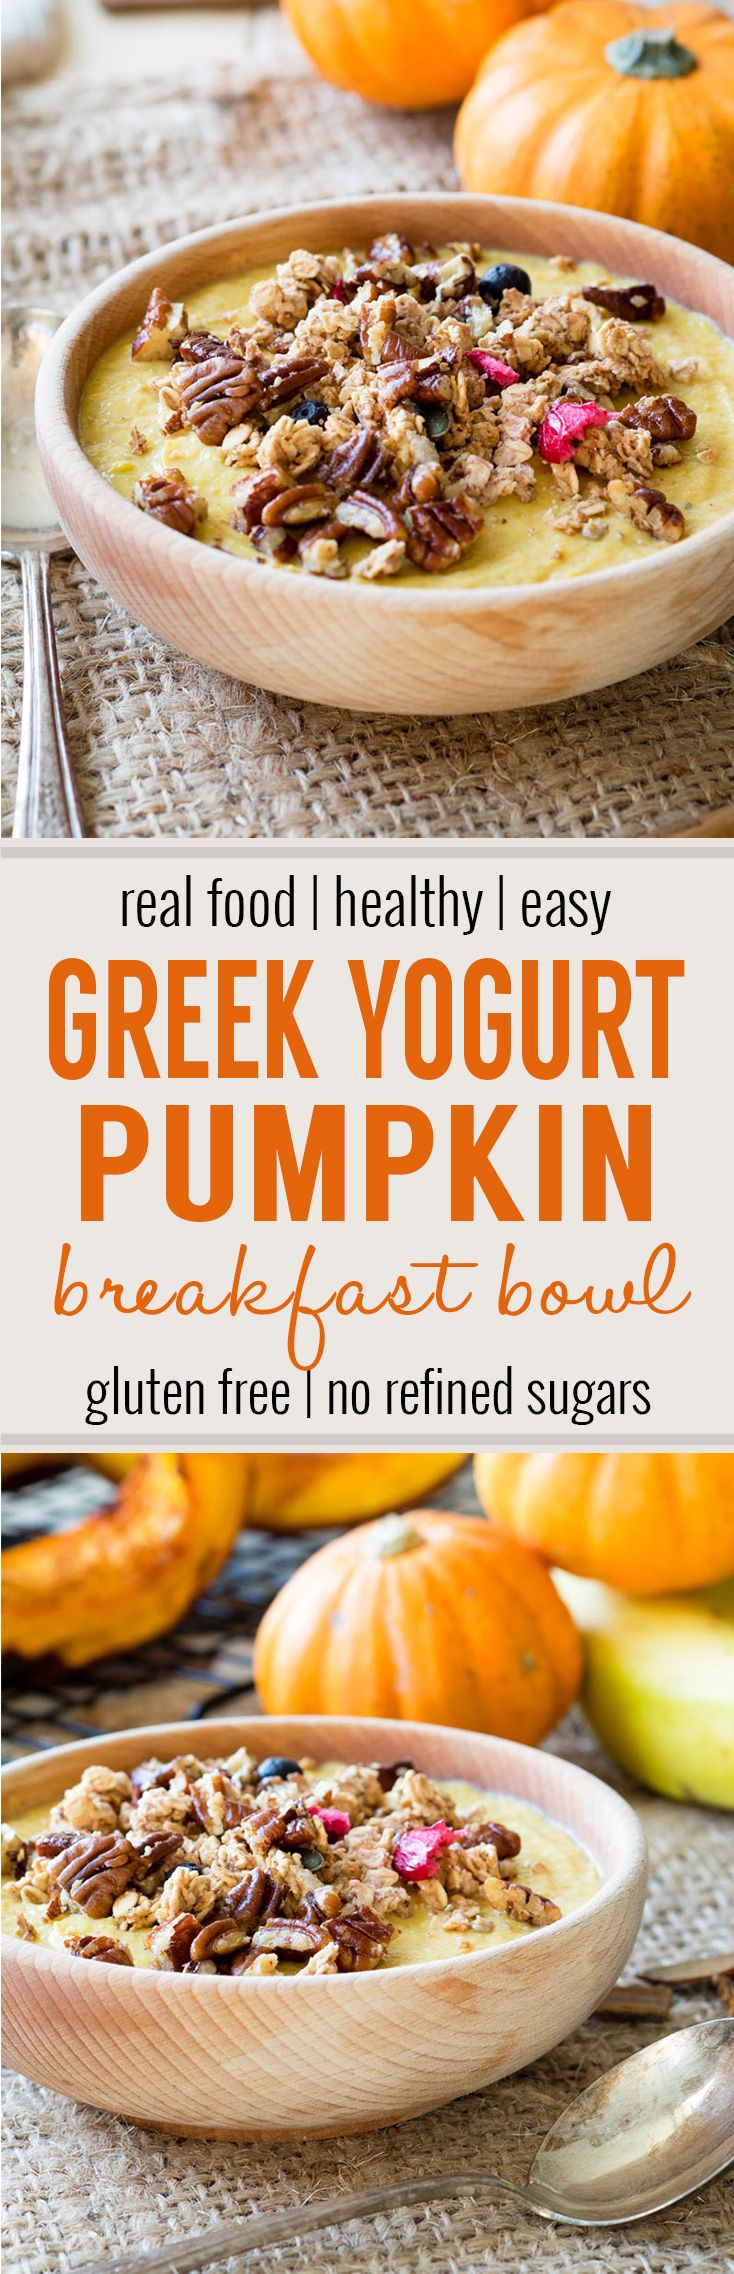 Pumpkin Greek Yogurt Breakfast Bowl (GF) - A healthy breakfast bowl that is made with Greek yogurt, real roasted pumpkins, and bananas. Naturally sweet, with no refined sugars. A delicious and quick breakfast for the fall. (Vegan Healthy Breakfast)